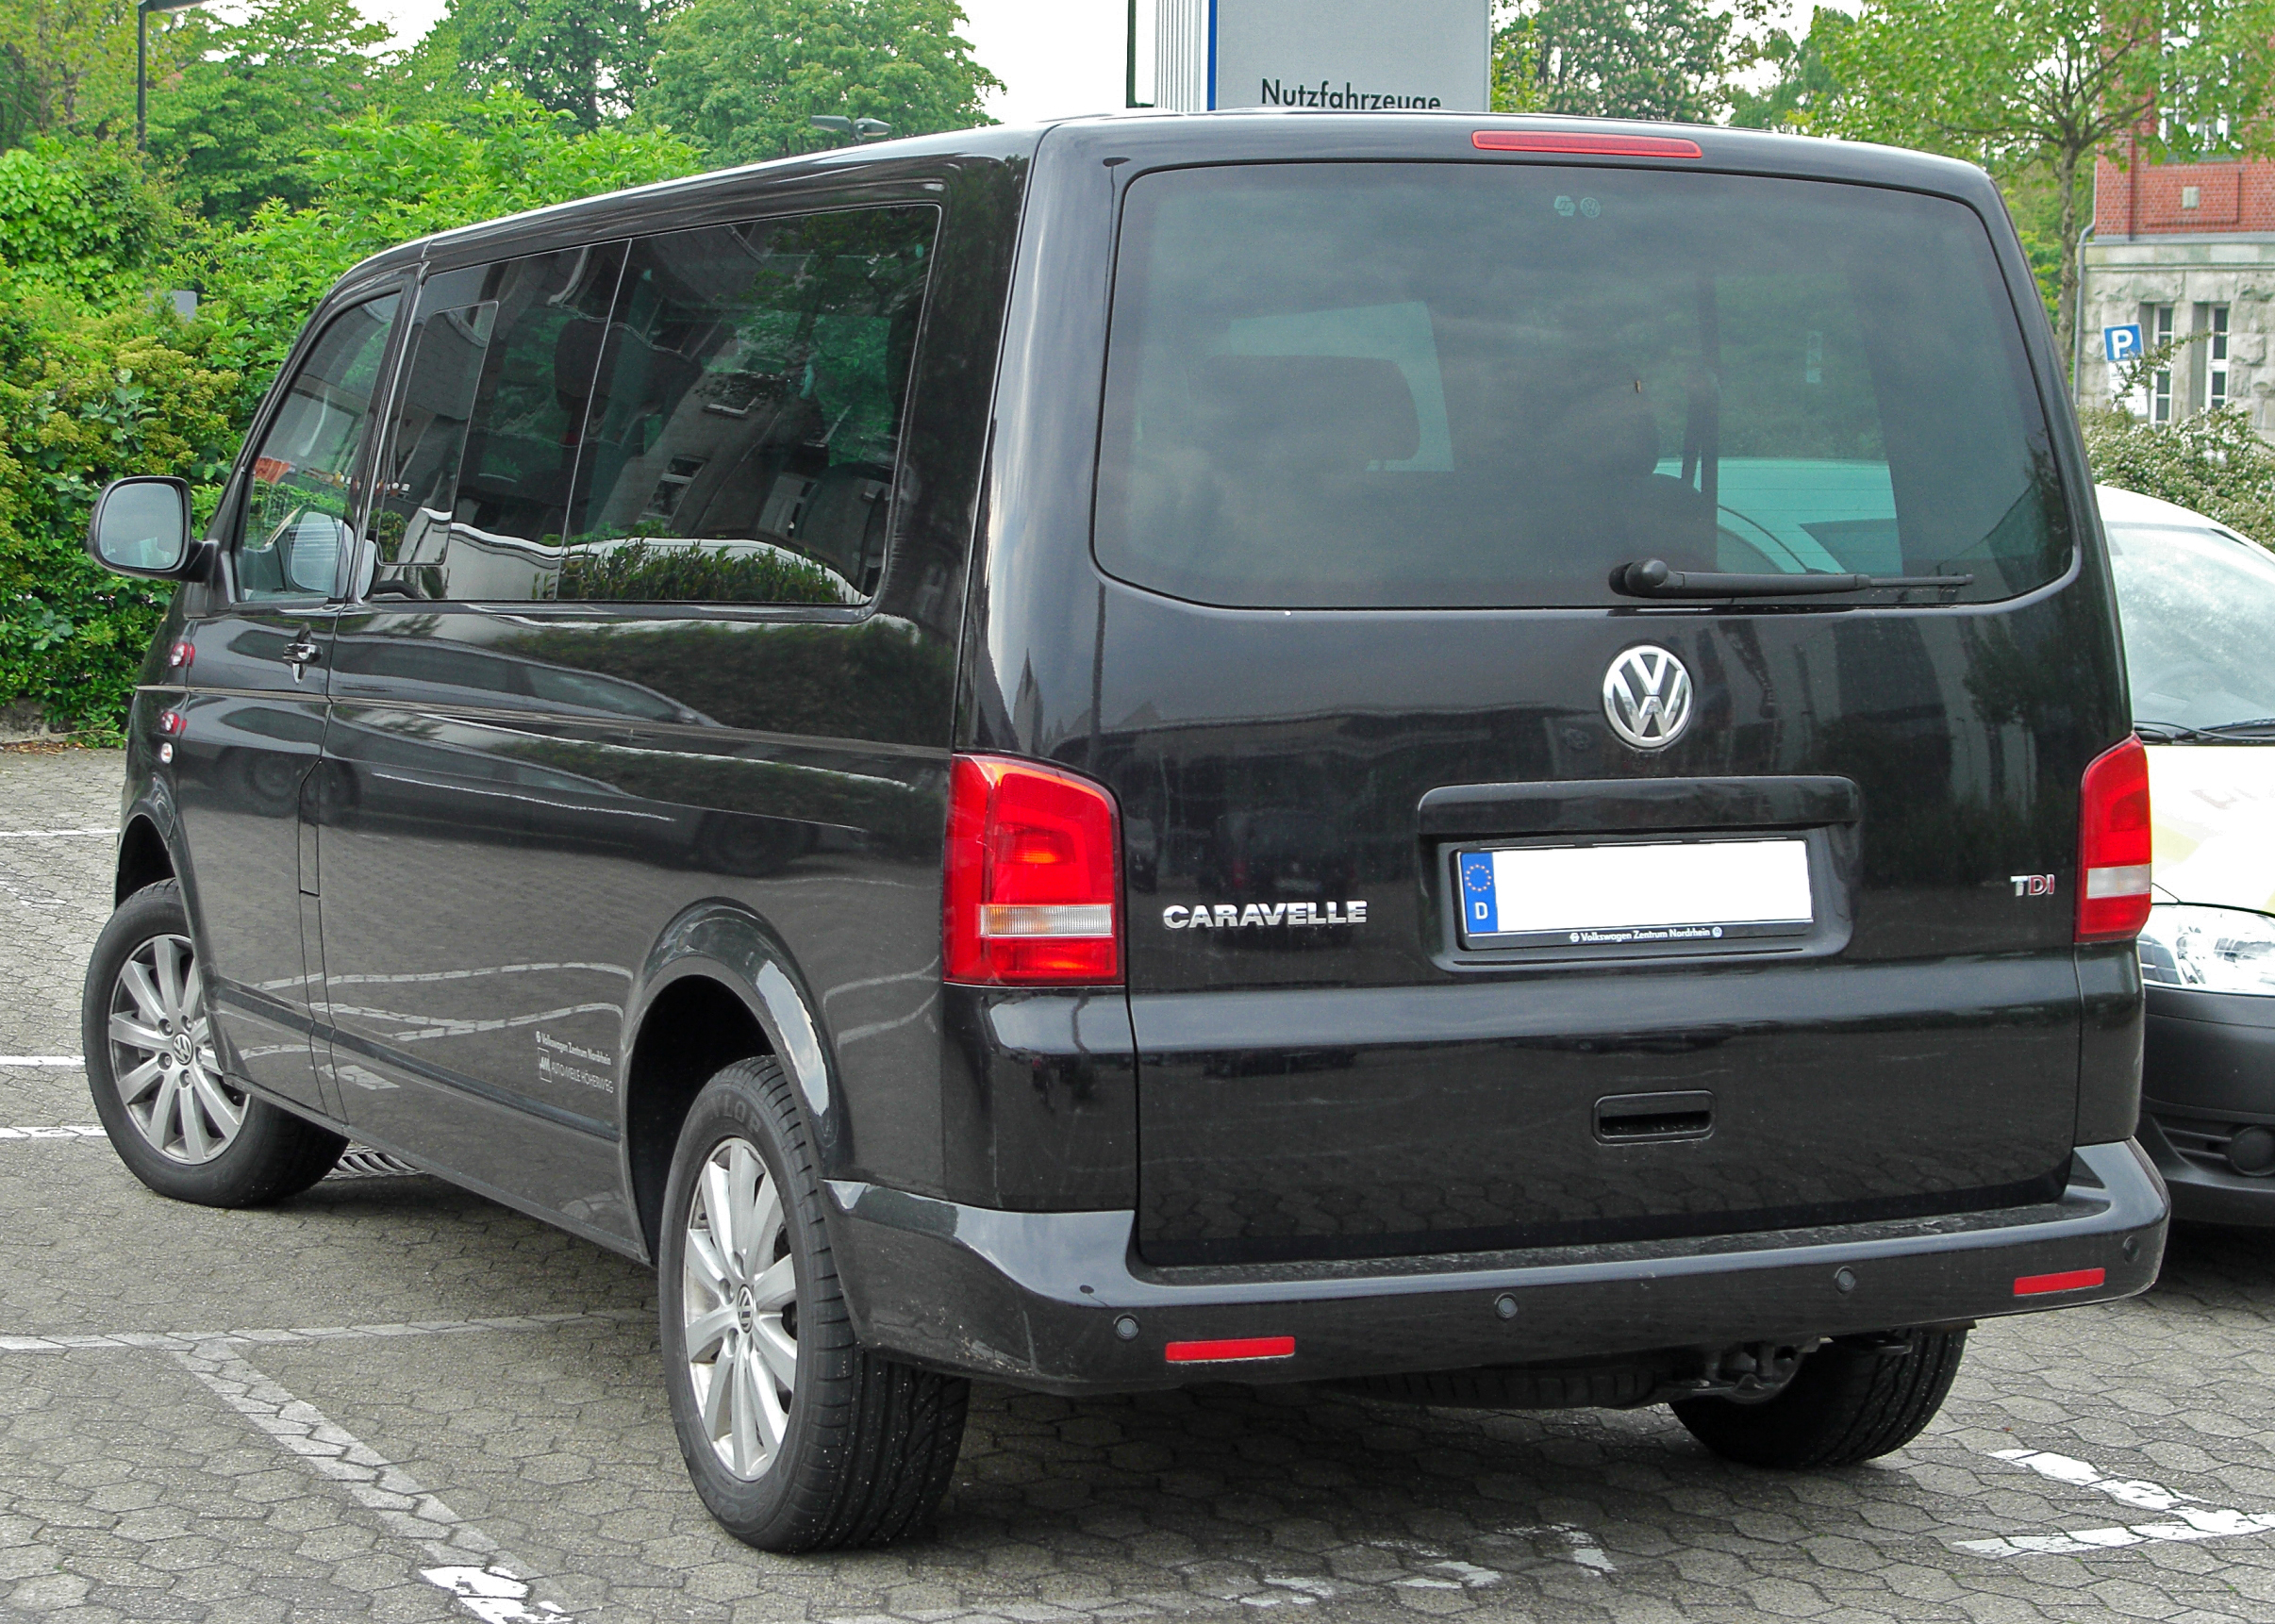 file vw caravelle tdi t5 facelift rear. Black Bedroom Furniture Sets. Home Design Ideas